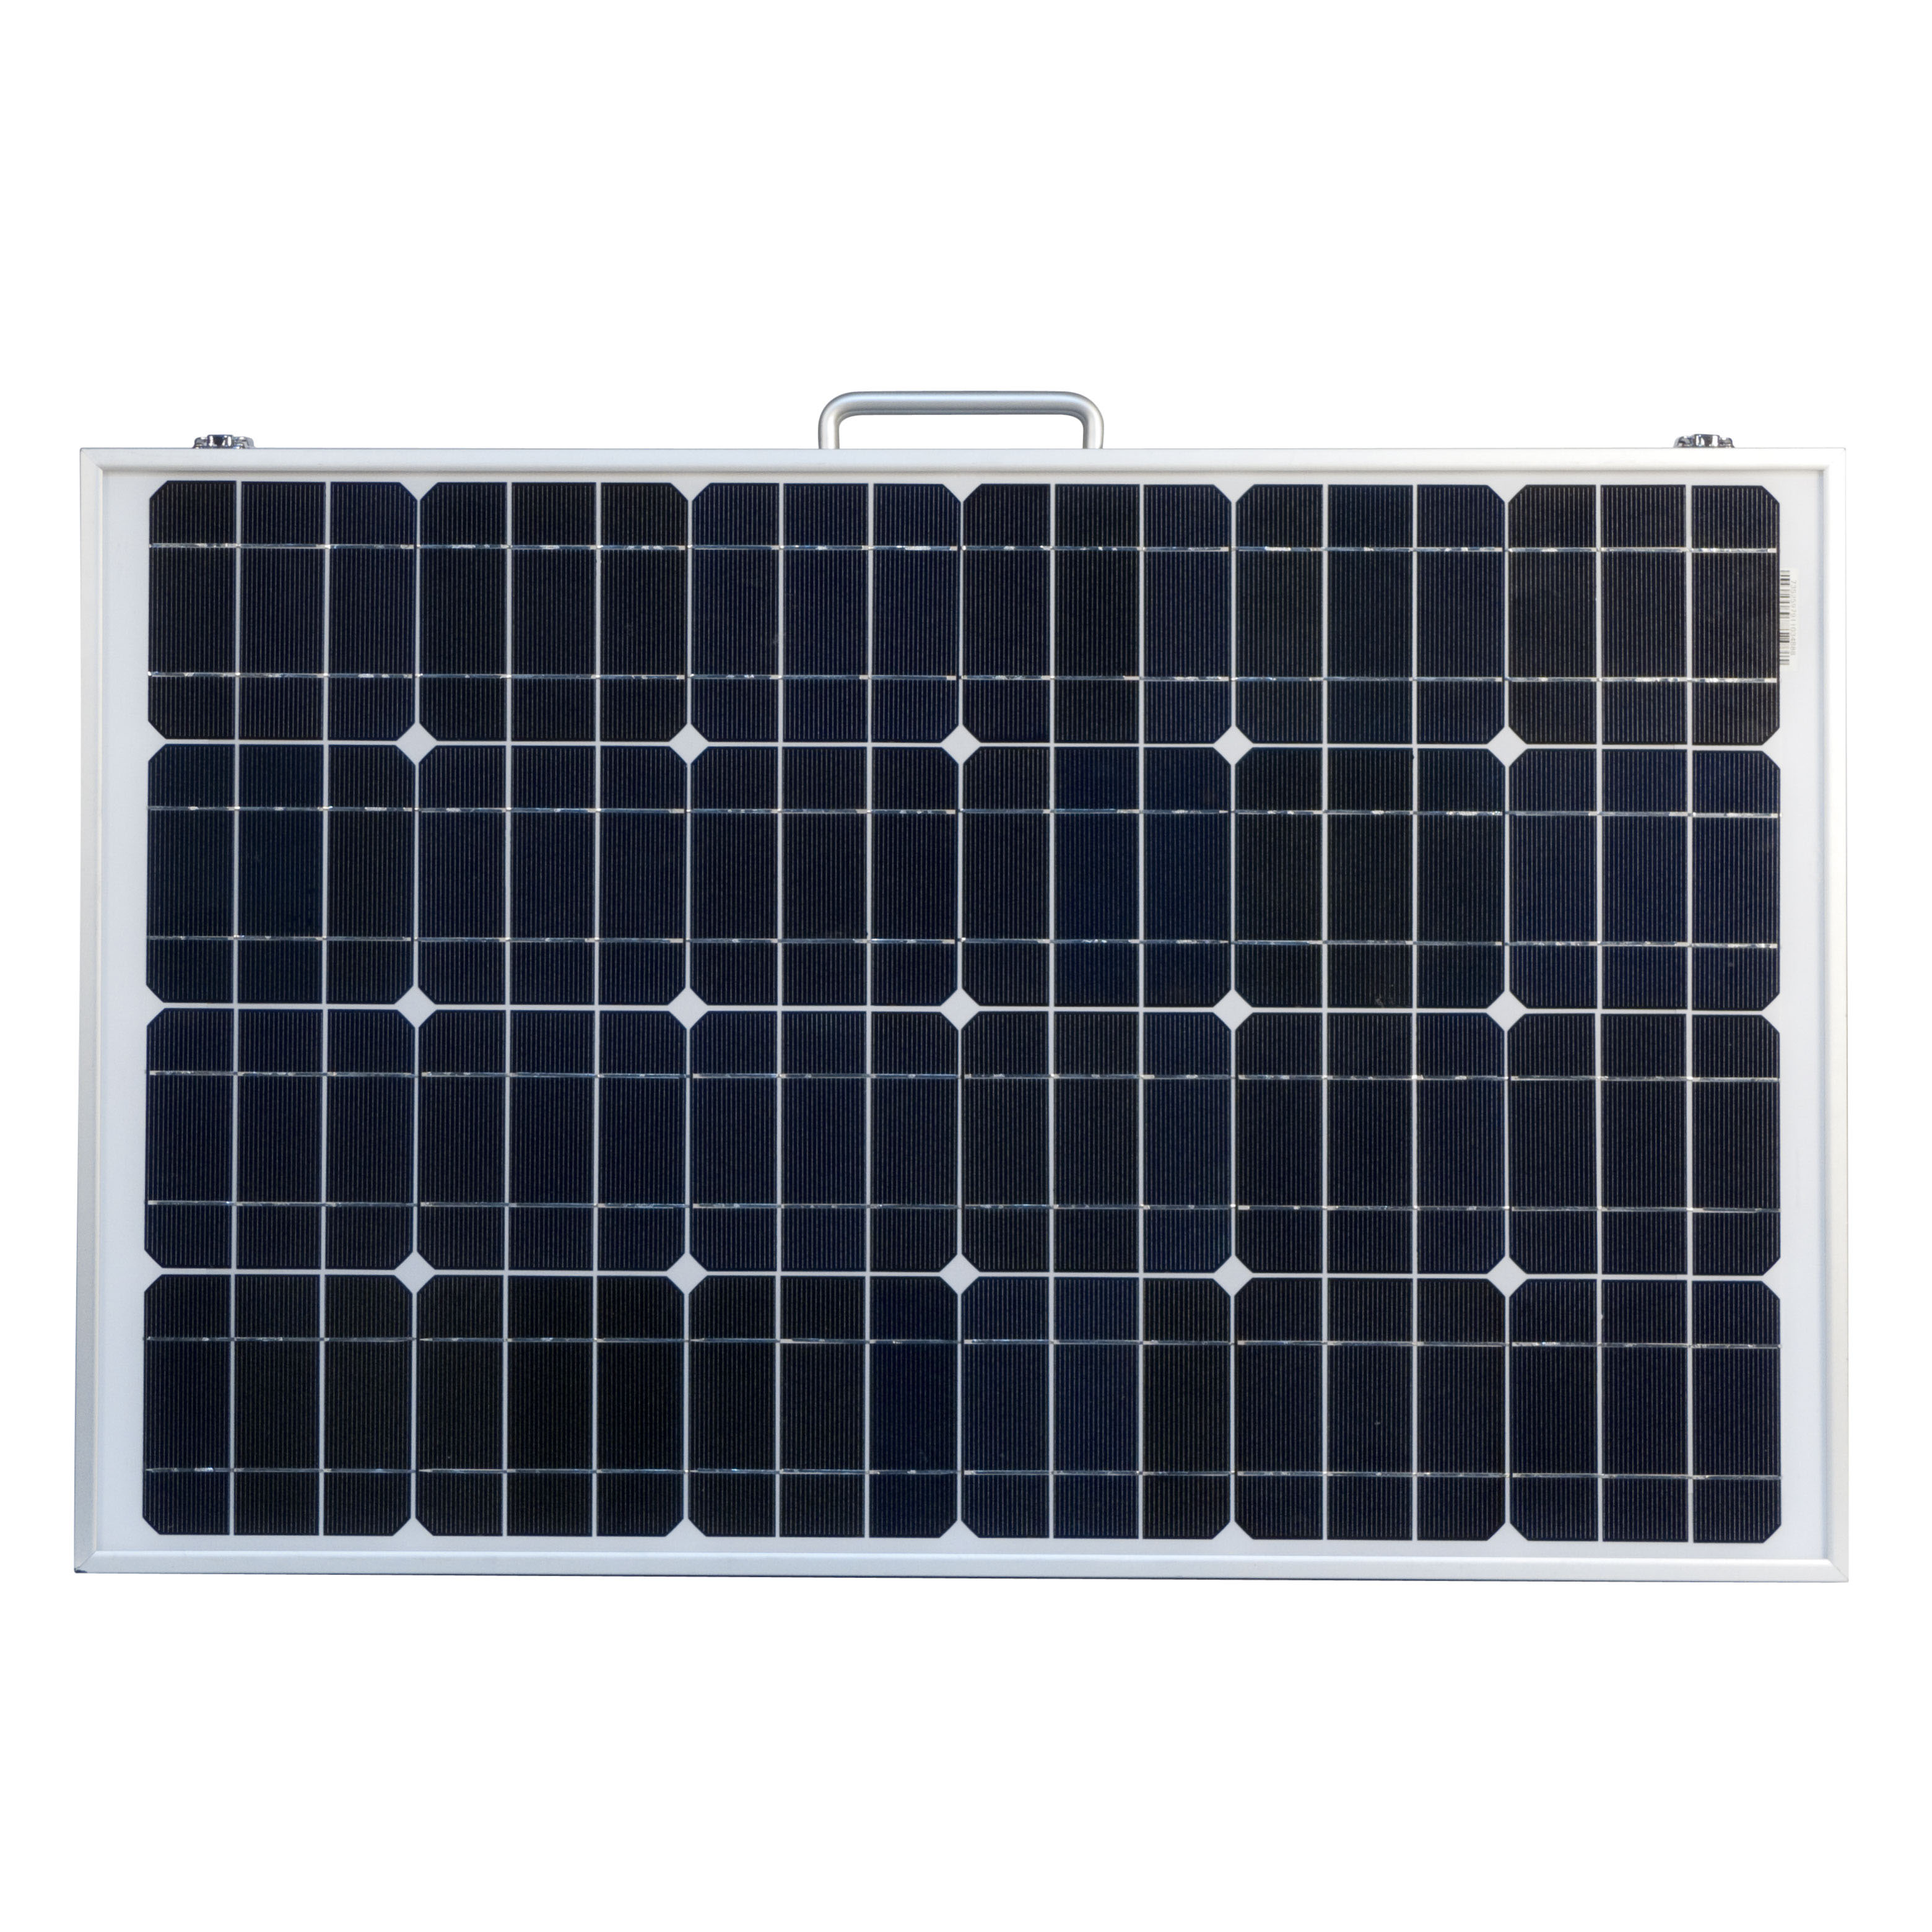 Expansion solar panel CUBE 1500 PLUS